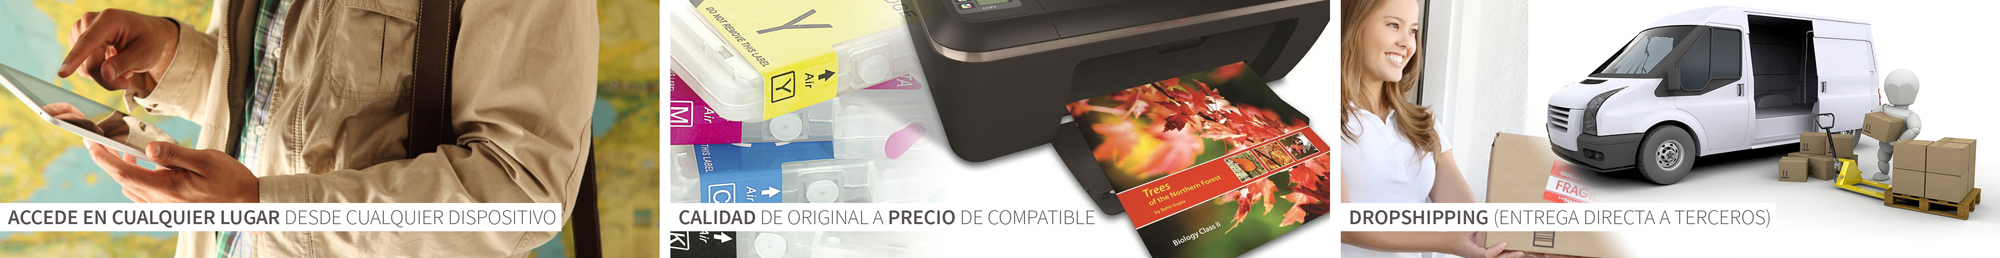 MAXPRINT SOLUTIONS S.L.U.